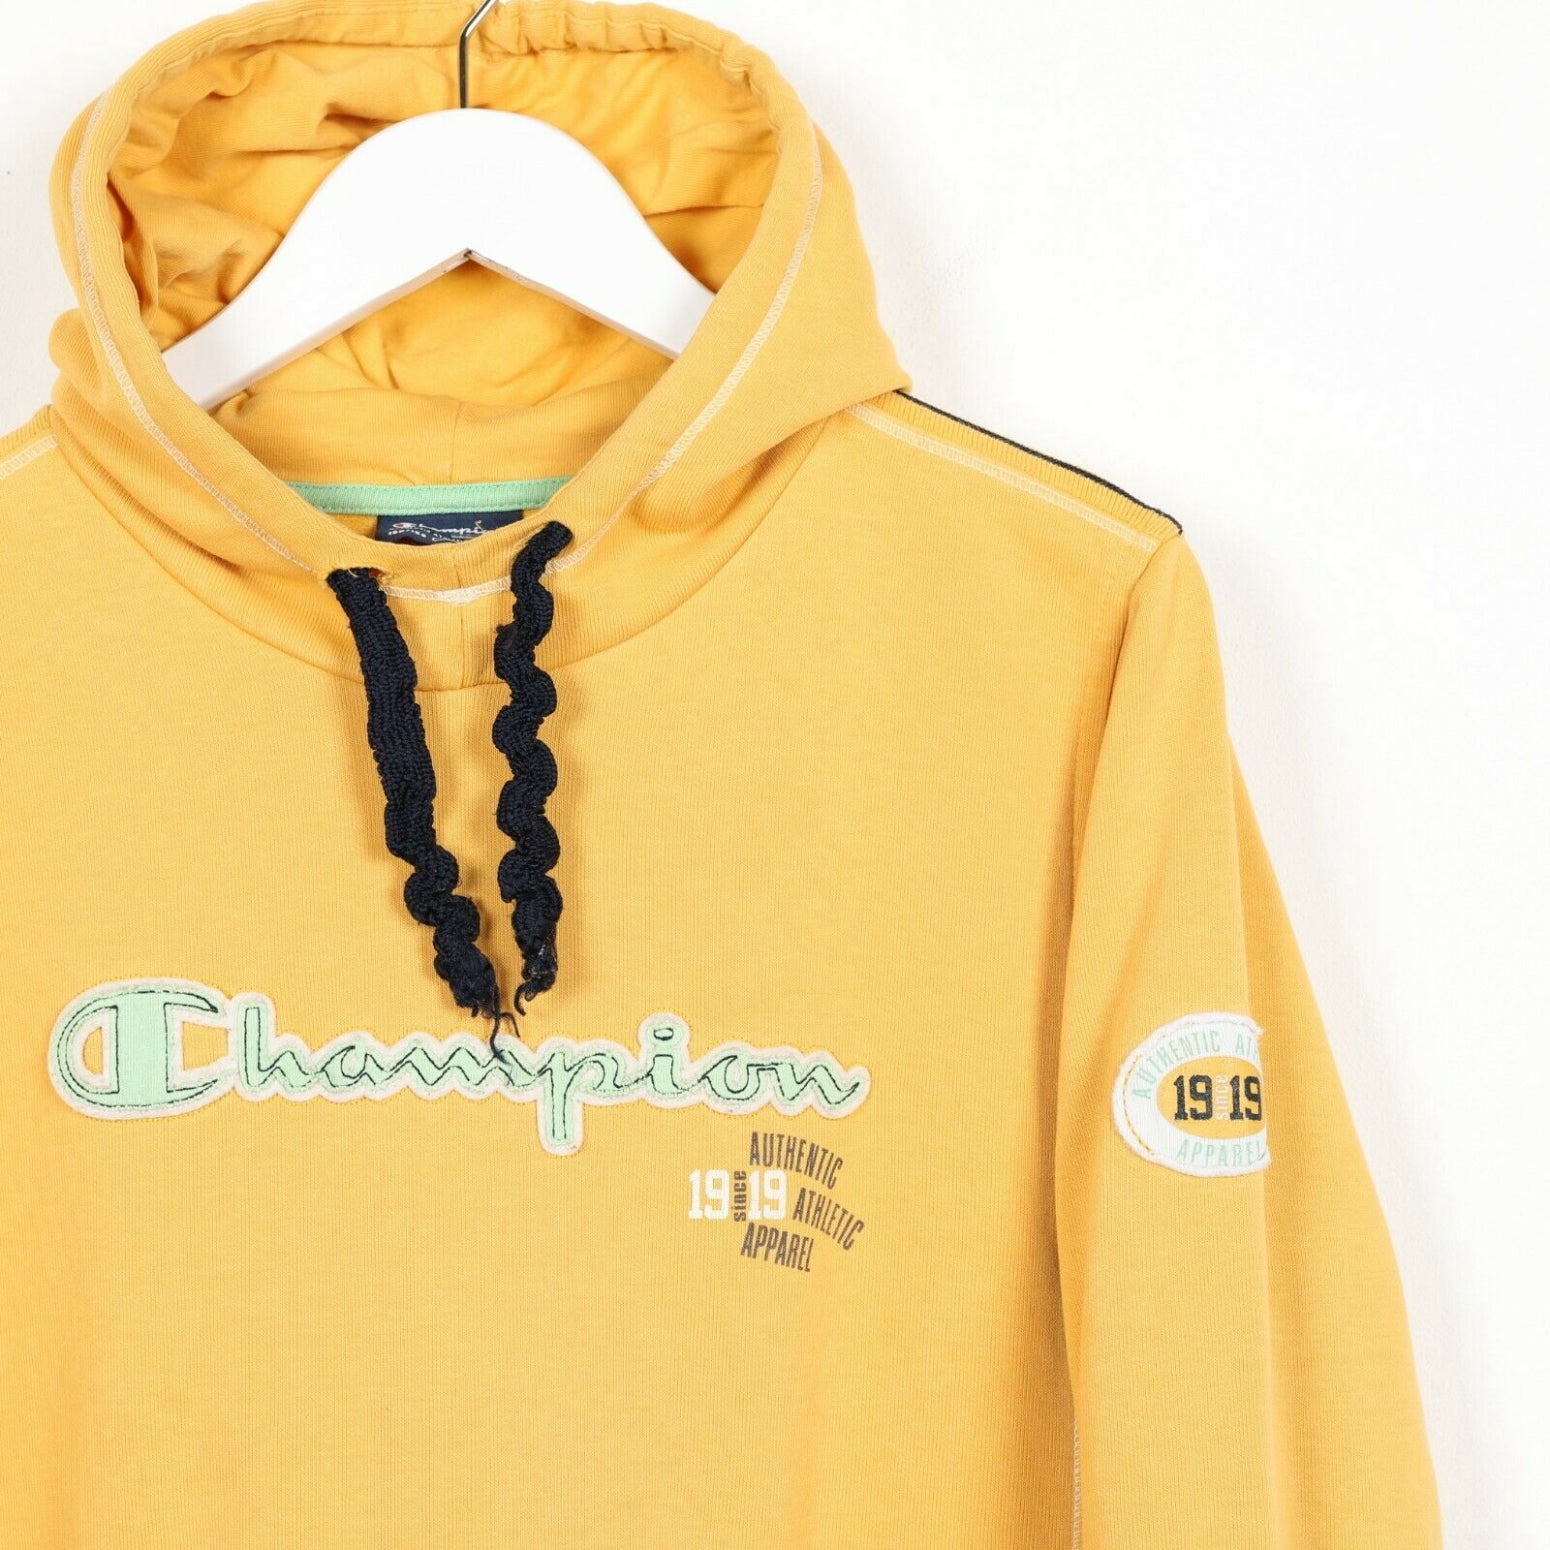 Vintage Women's CHAMPION Central Spell Out Hoodie Sweatshirt Yellow Small s